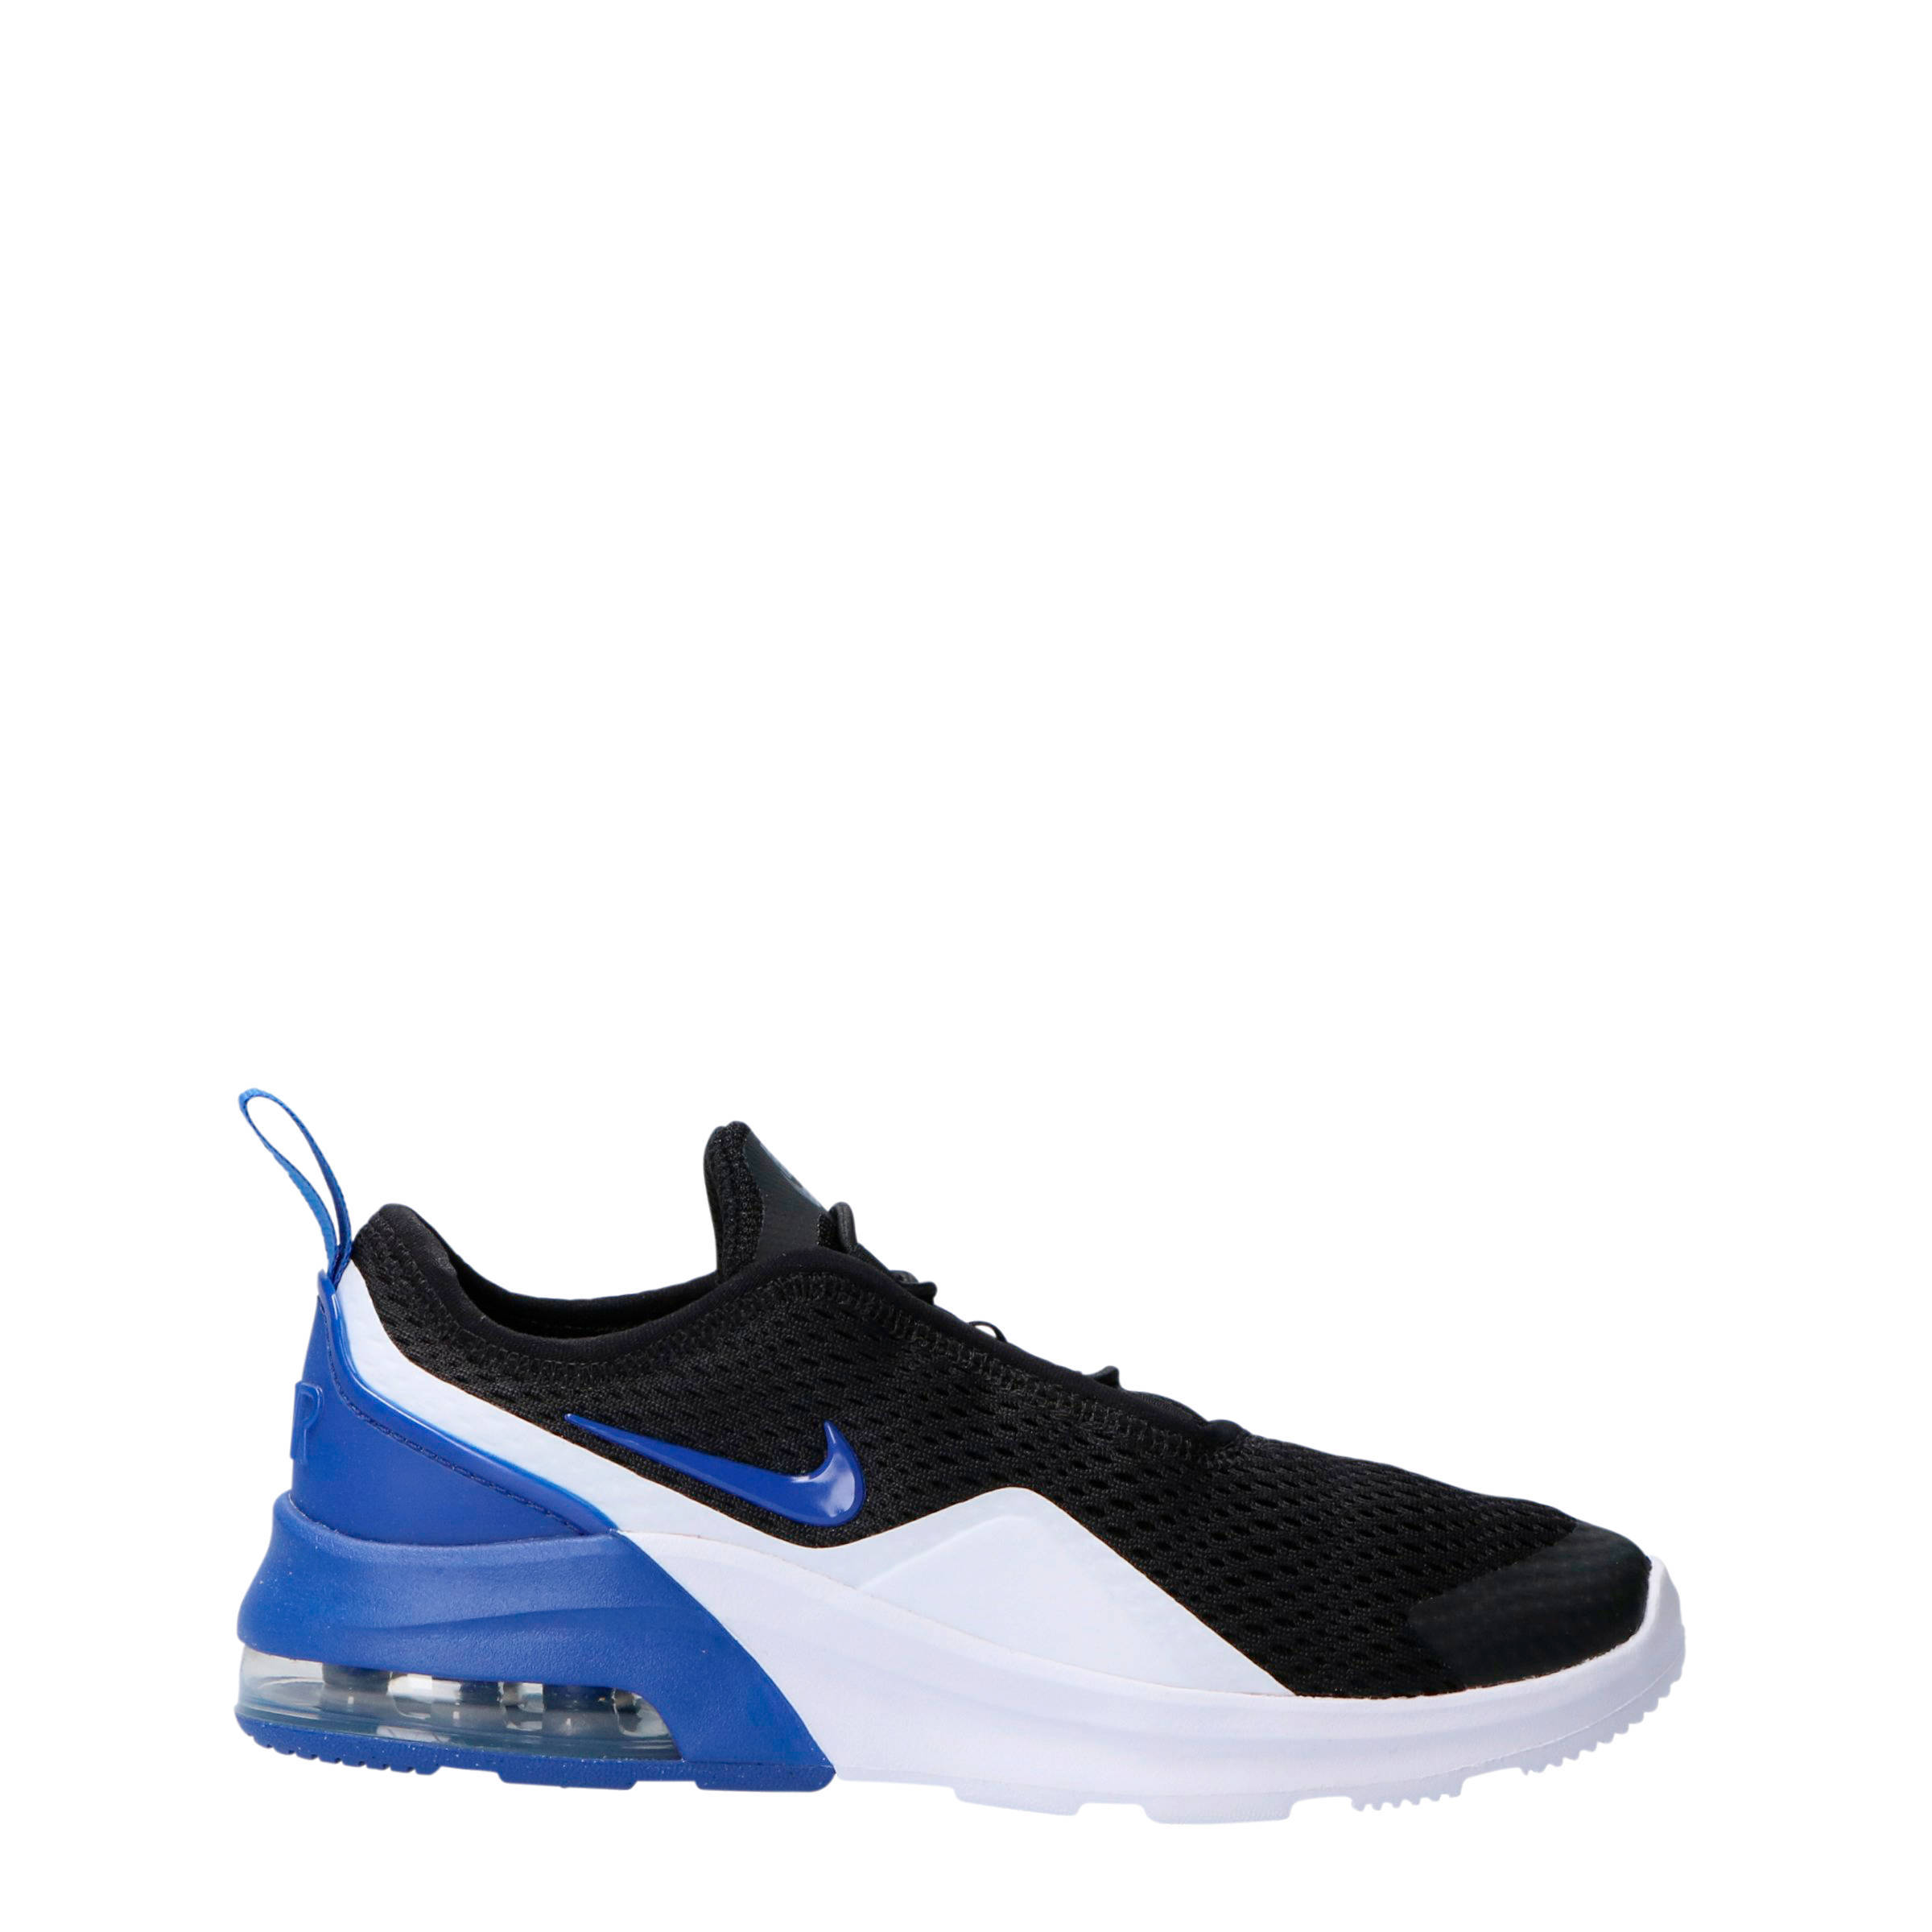 fe29997525a Nike Air Max Motion 2 sneakers zwart wit blauw